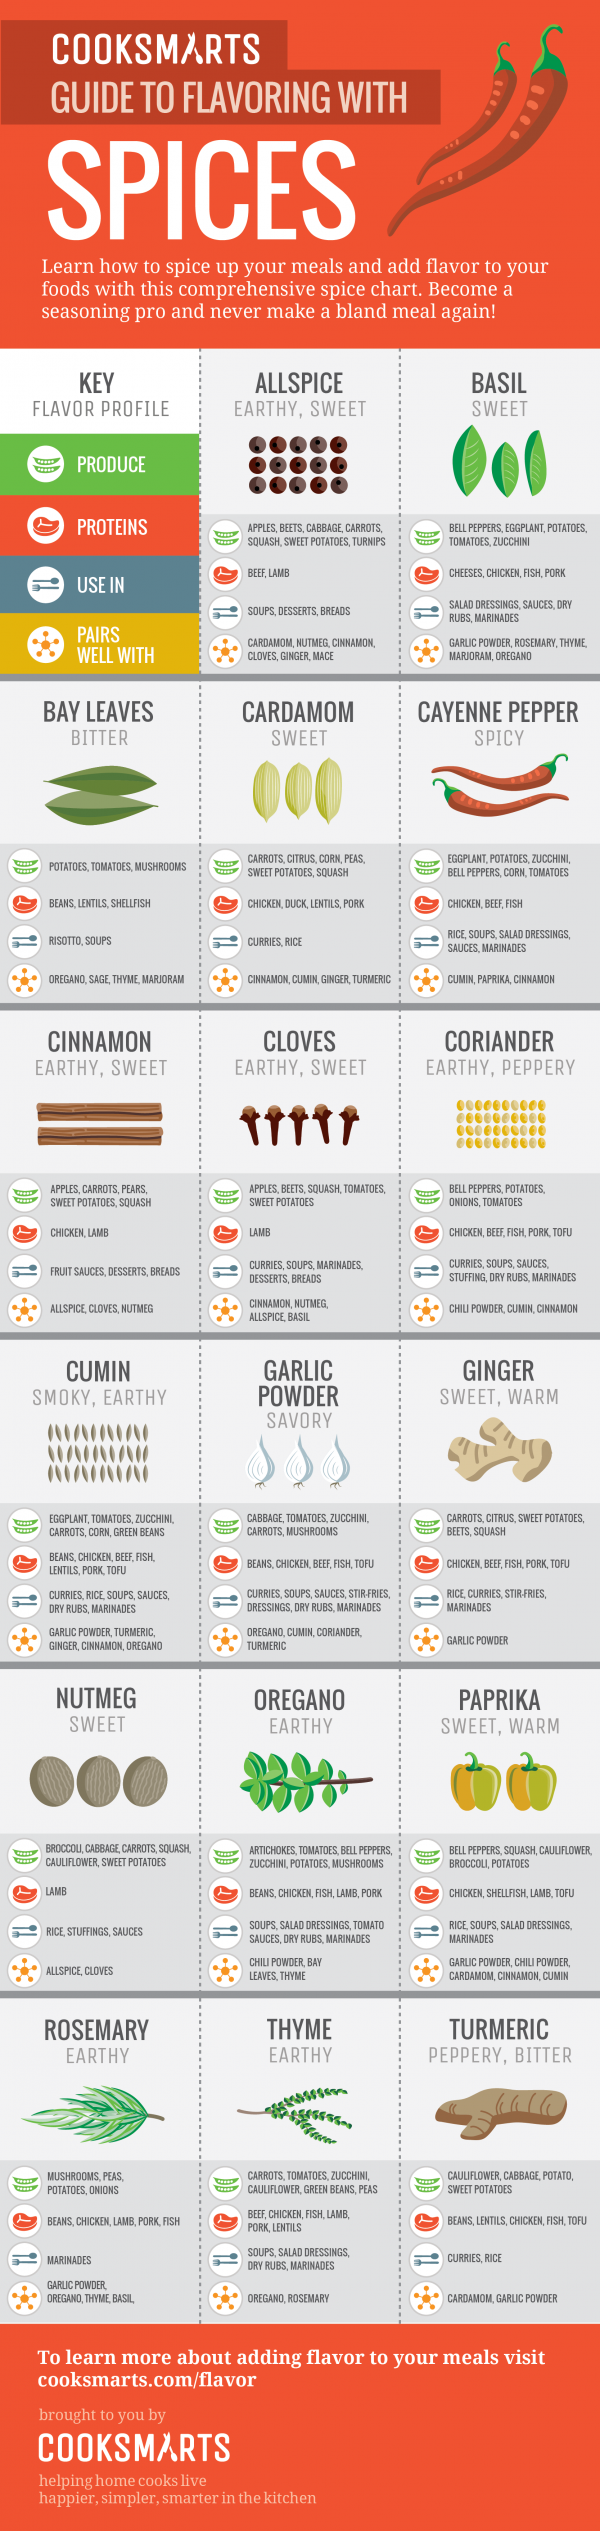 Guide to Flavoring with Spices (vertical)